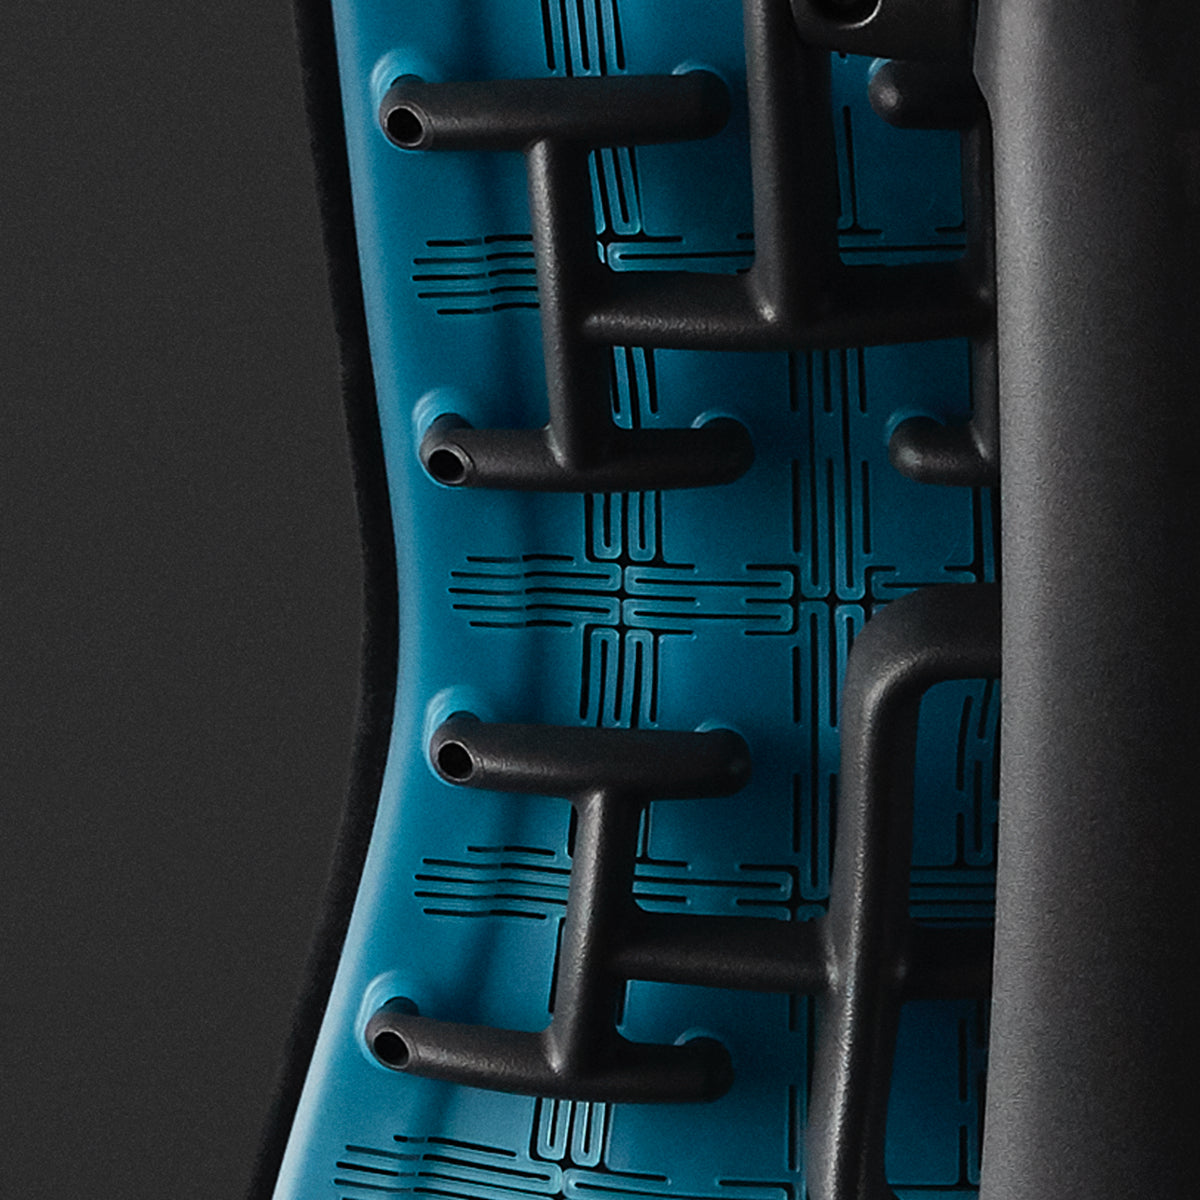 Embody Gaming Chair close-up of cyan matte back and spine with a black background.